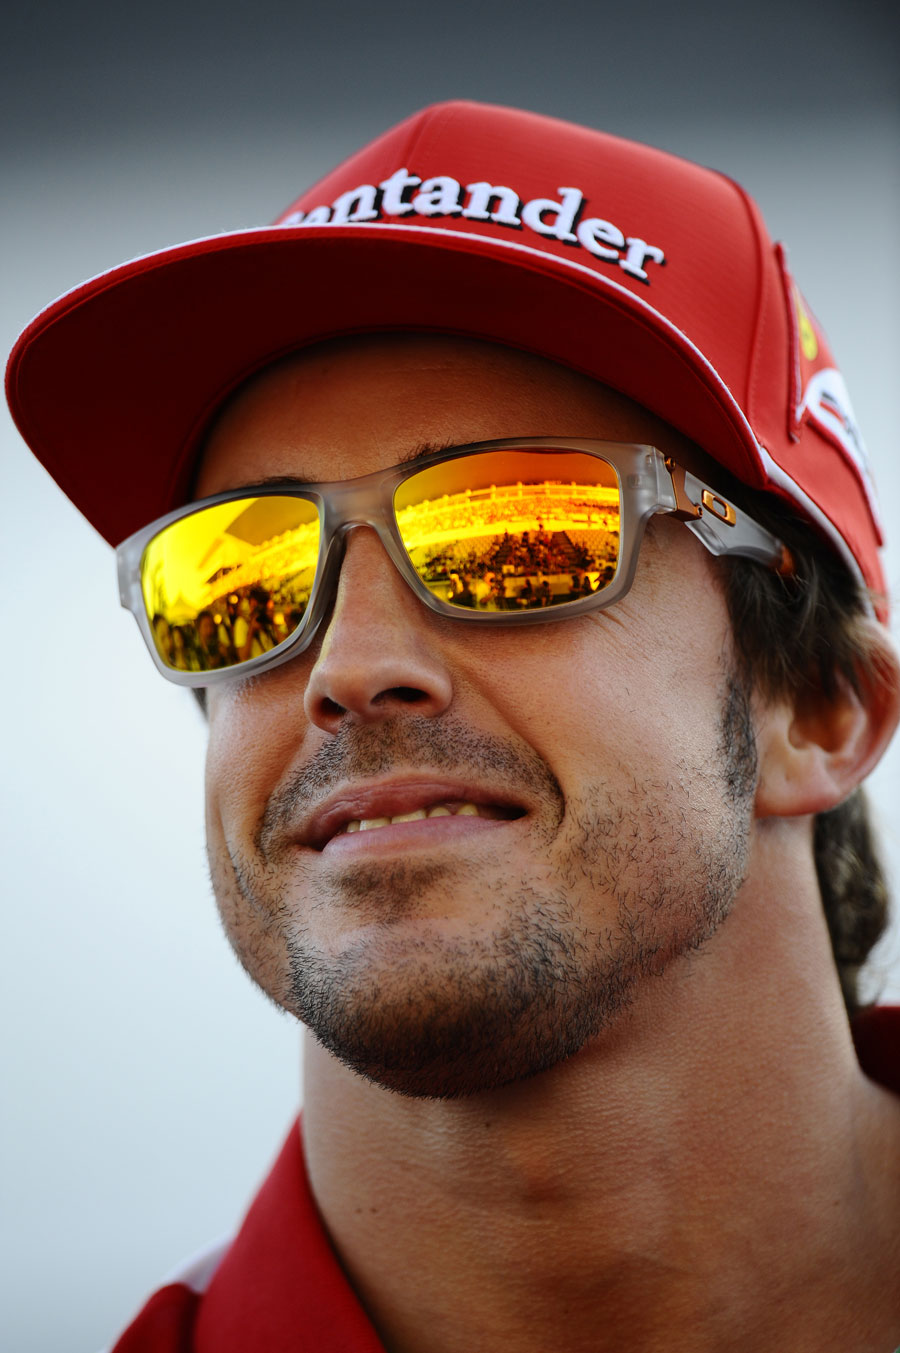 Fernando Alonso smiles at fans in the pit lane